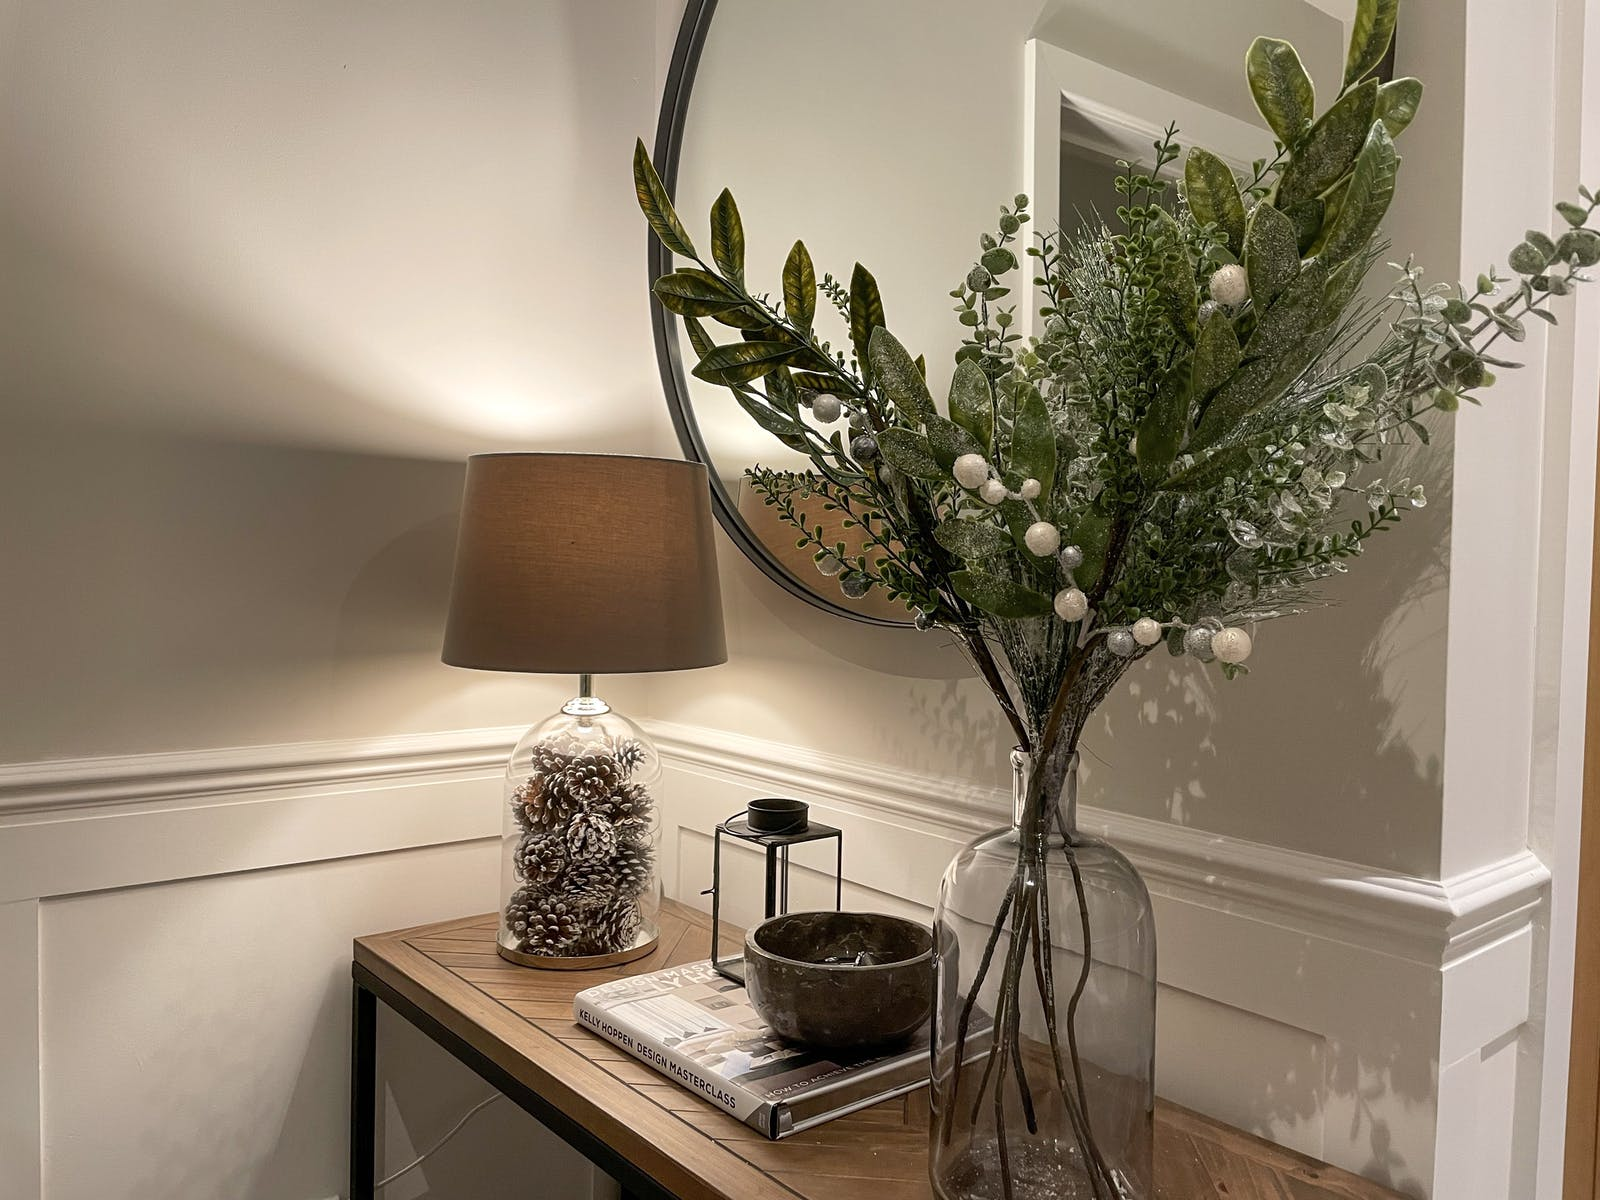 Hallway console table with Christmas decoration and pearls in vases